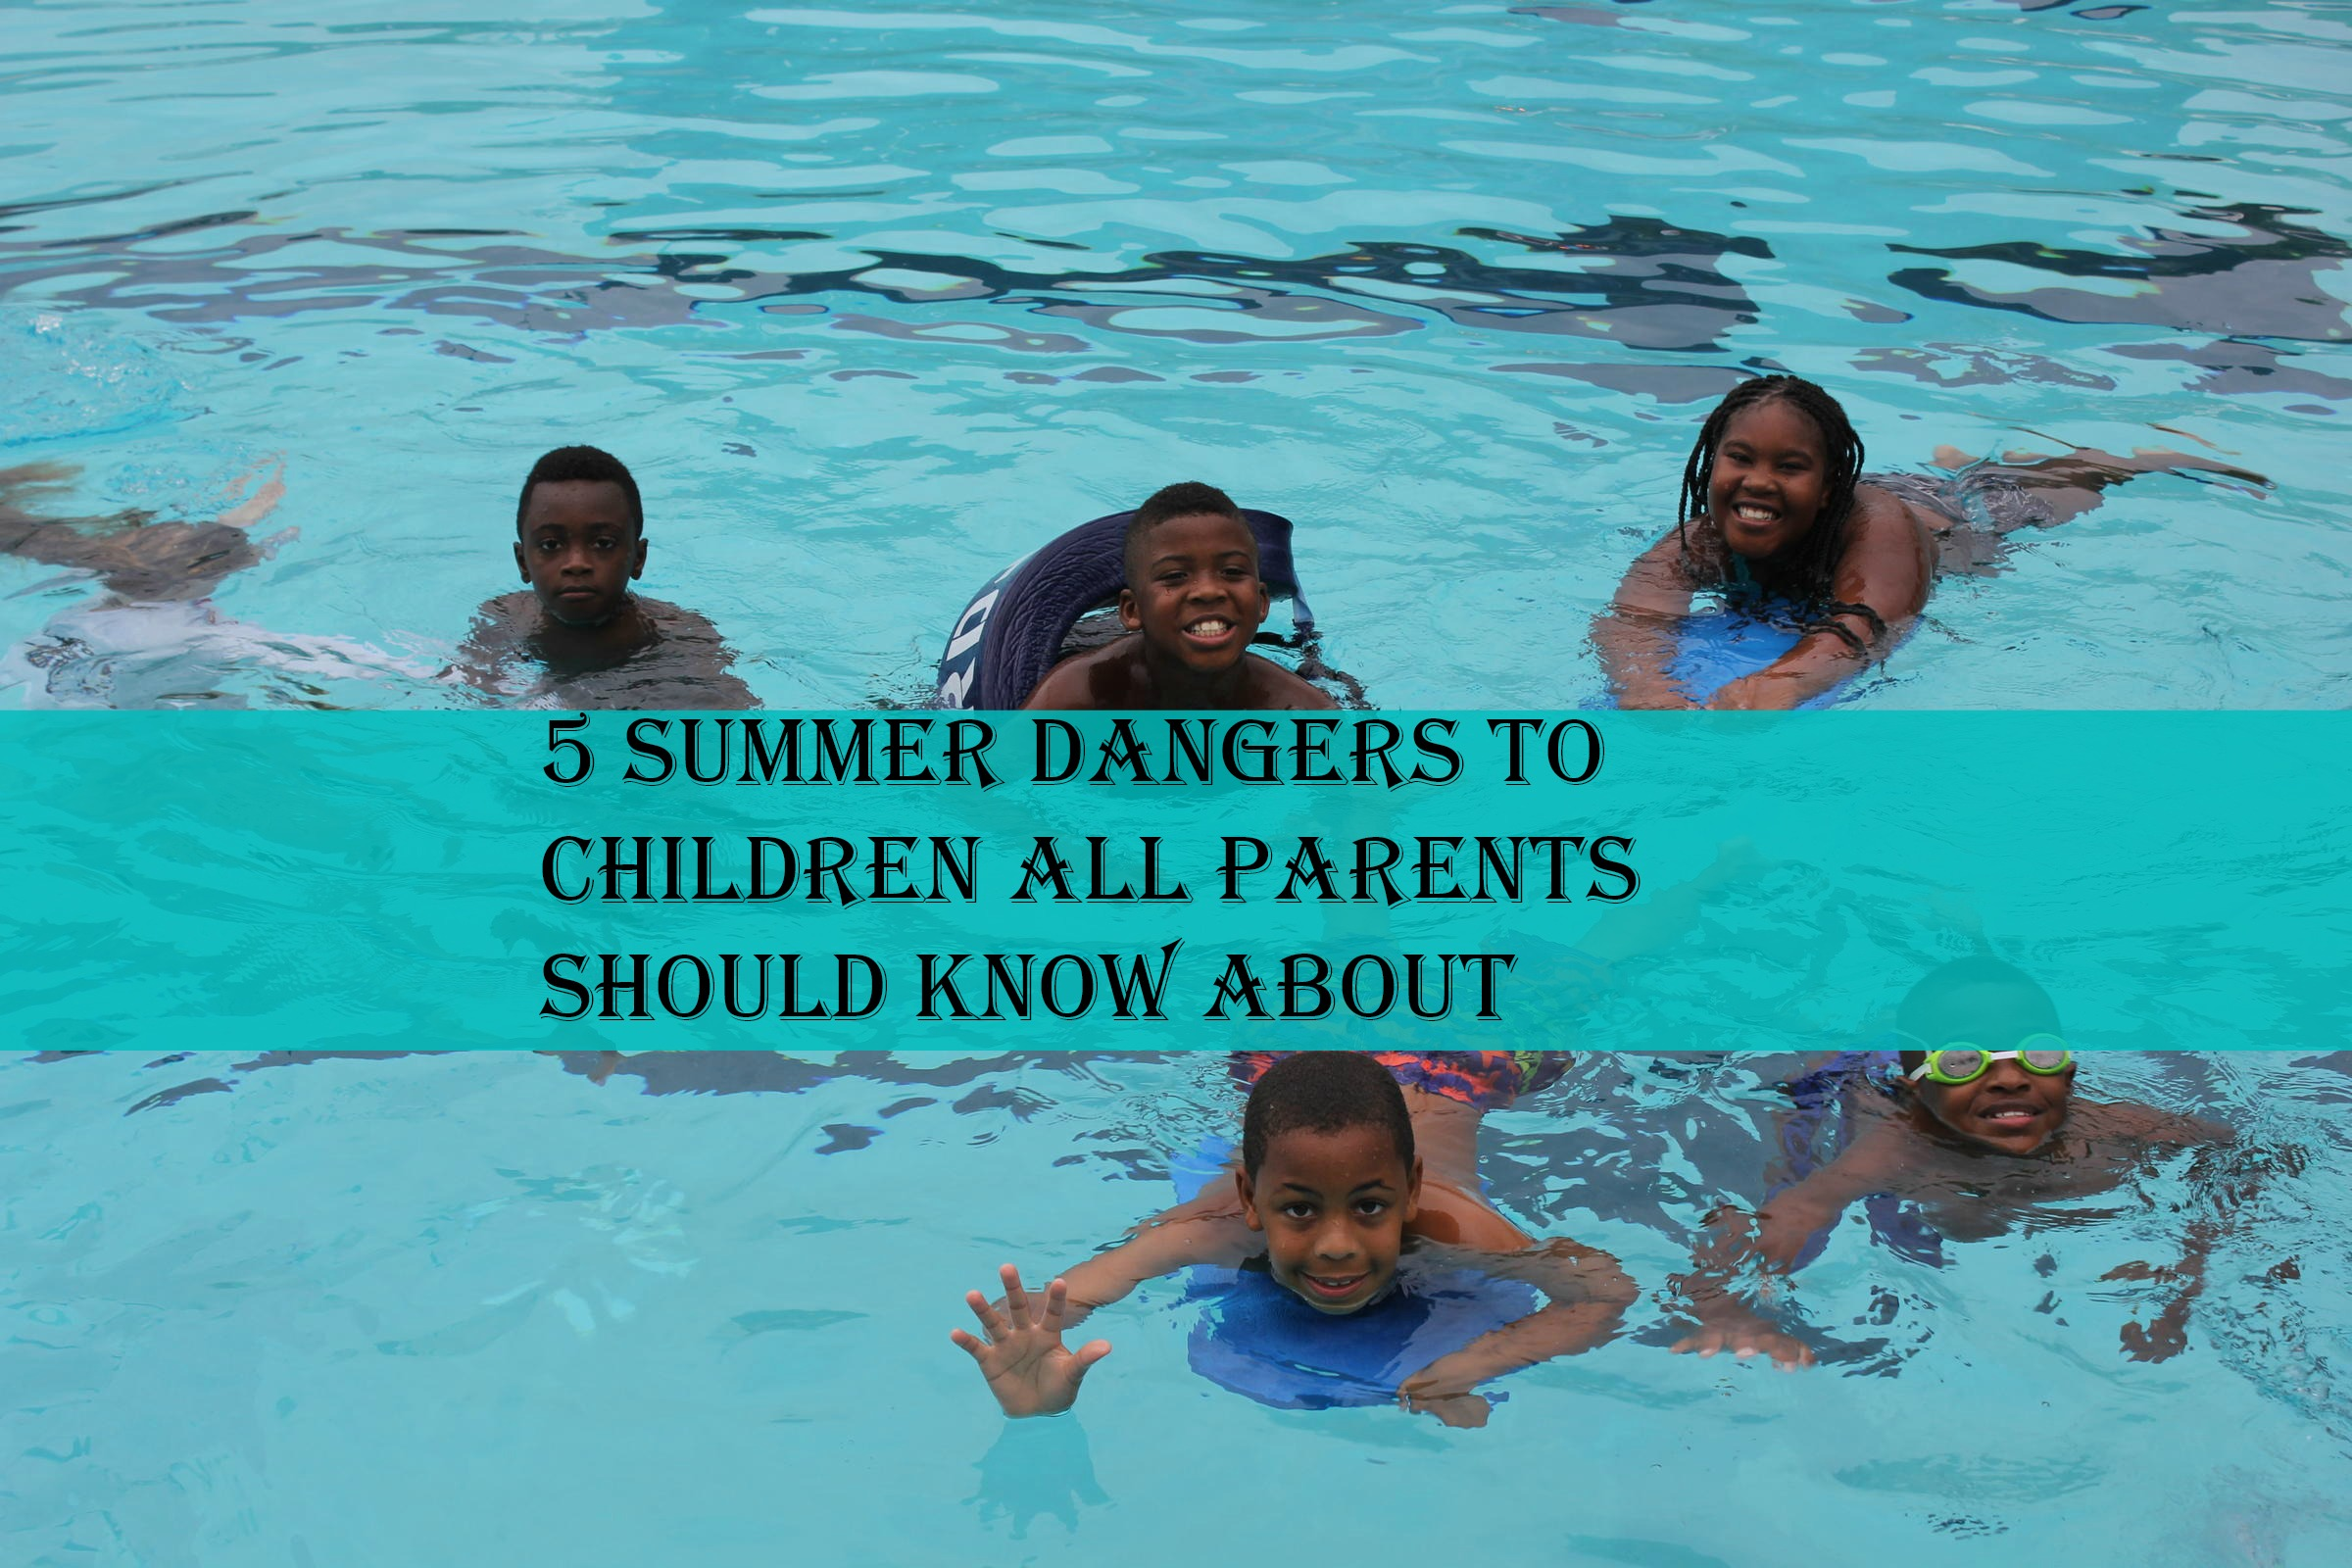 5 Summer Dangers to Children all Parents Should Know About